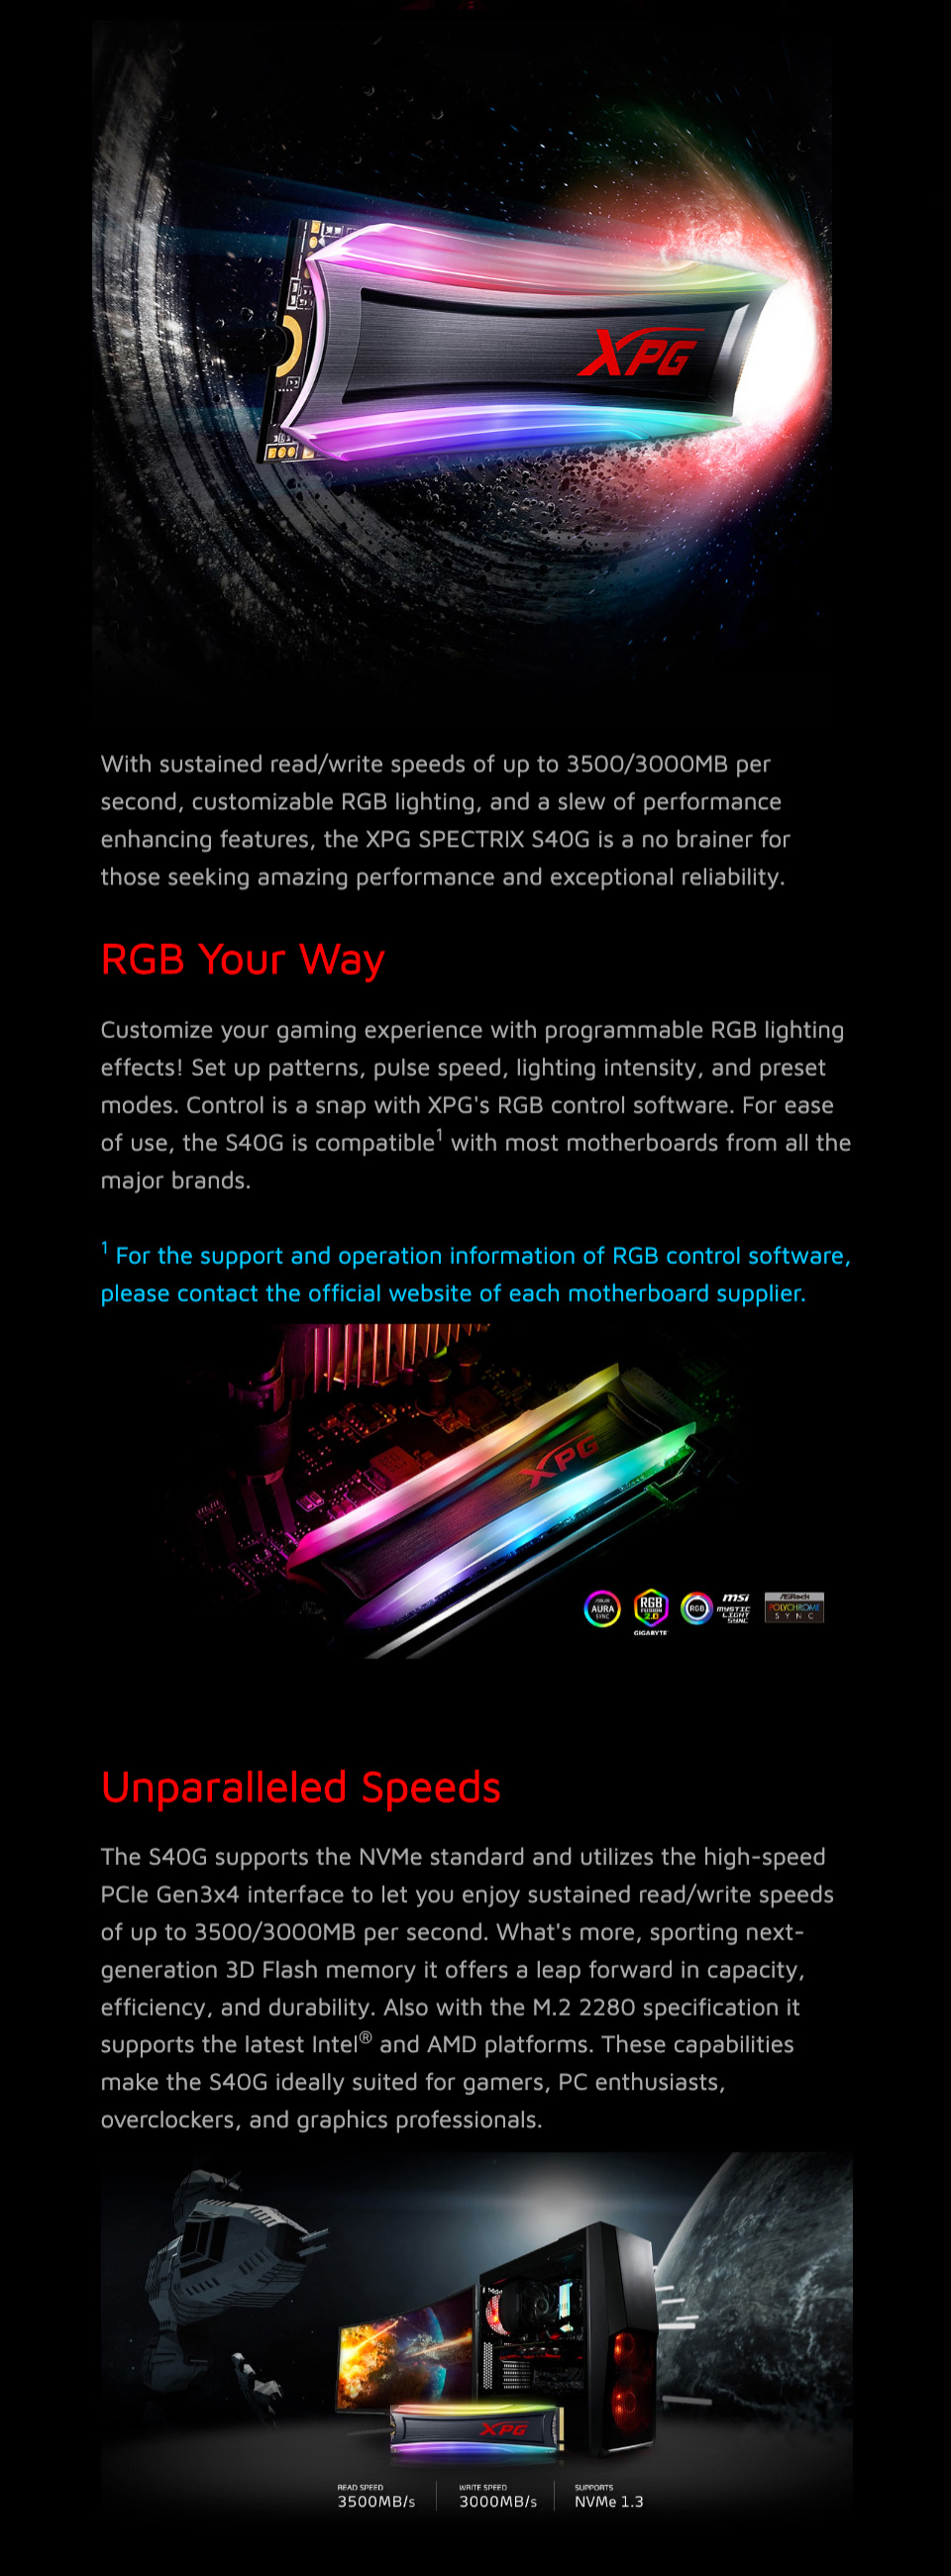 ADATA XPG S40G RGB M.2 NVMe Solid State Drive 2TB features